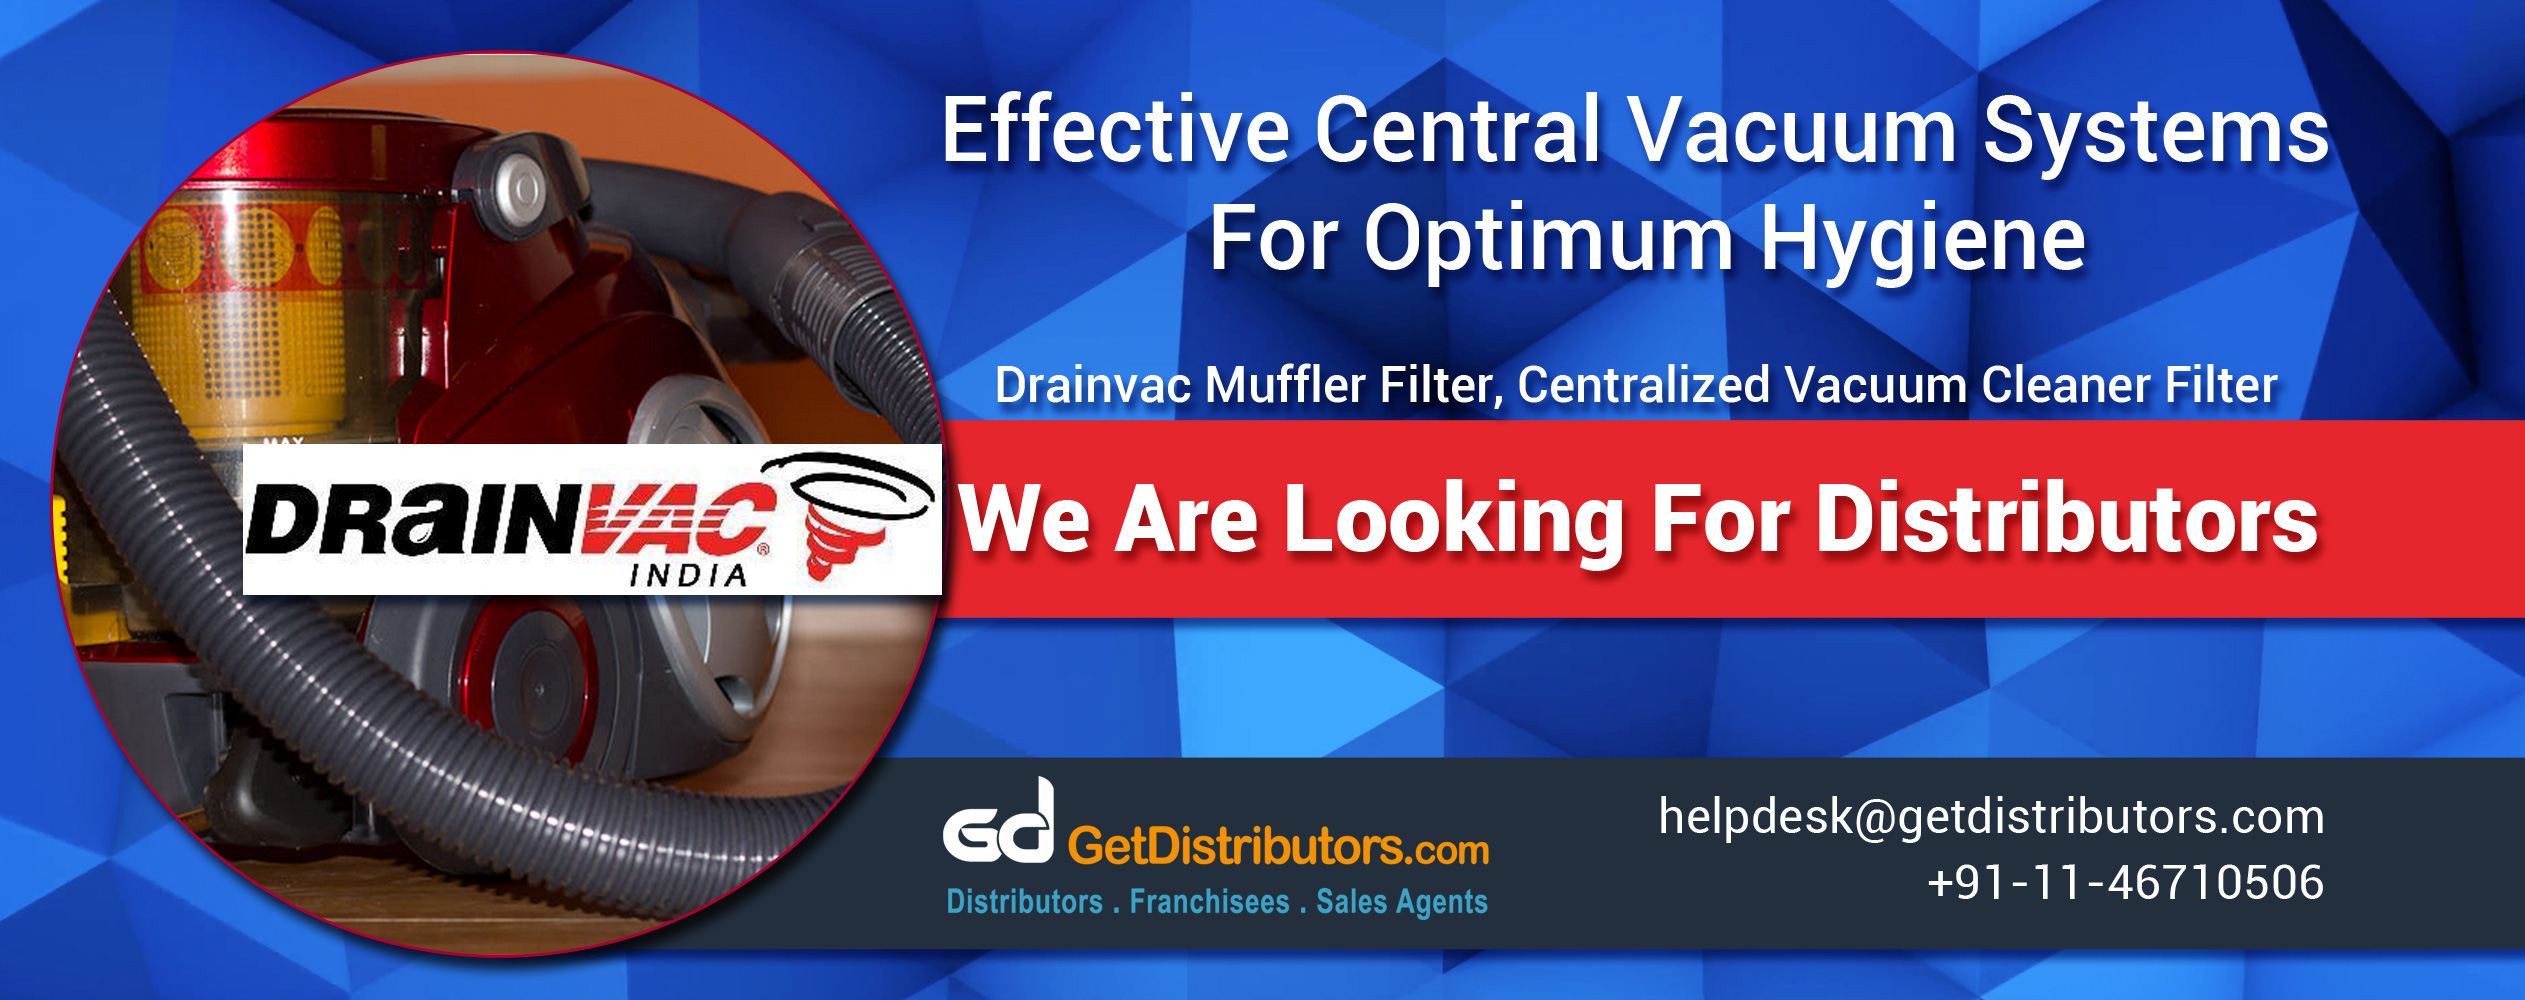 Effective Central Vacuum Systems for Optimum Hygiene